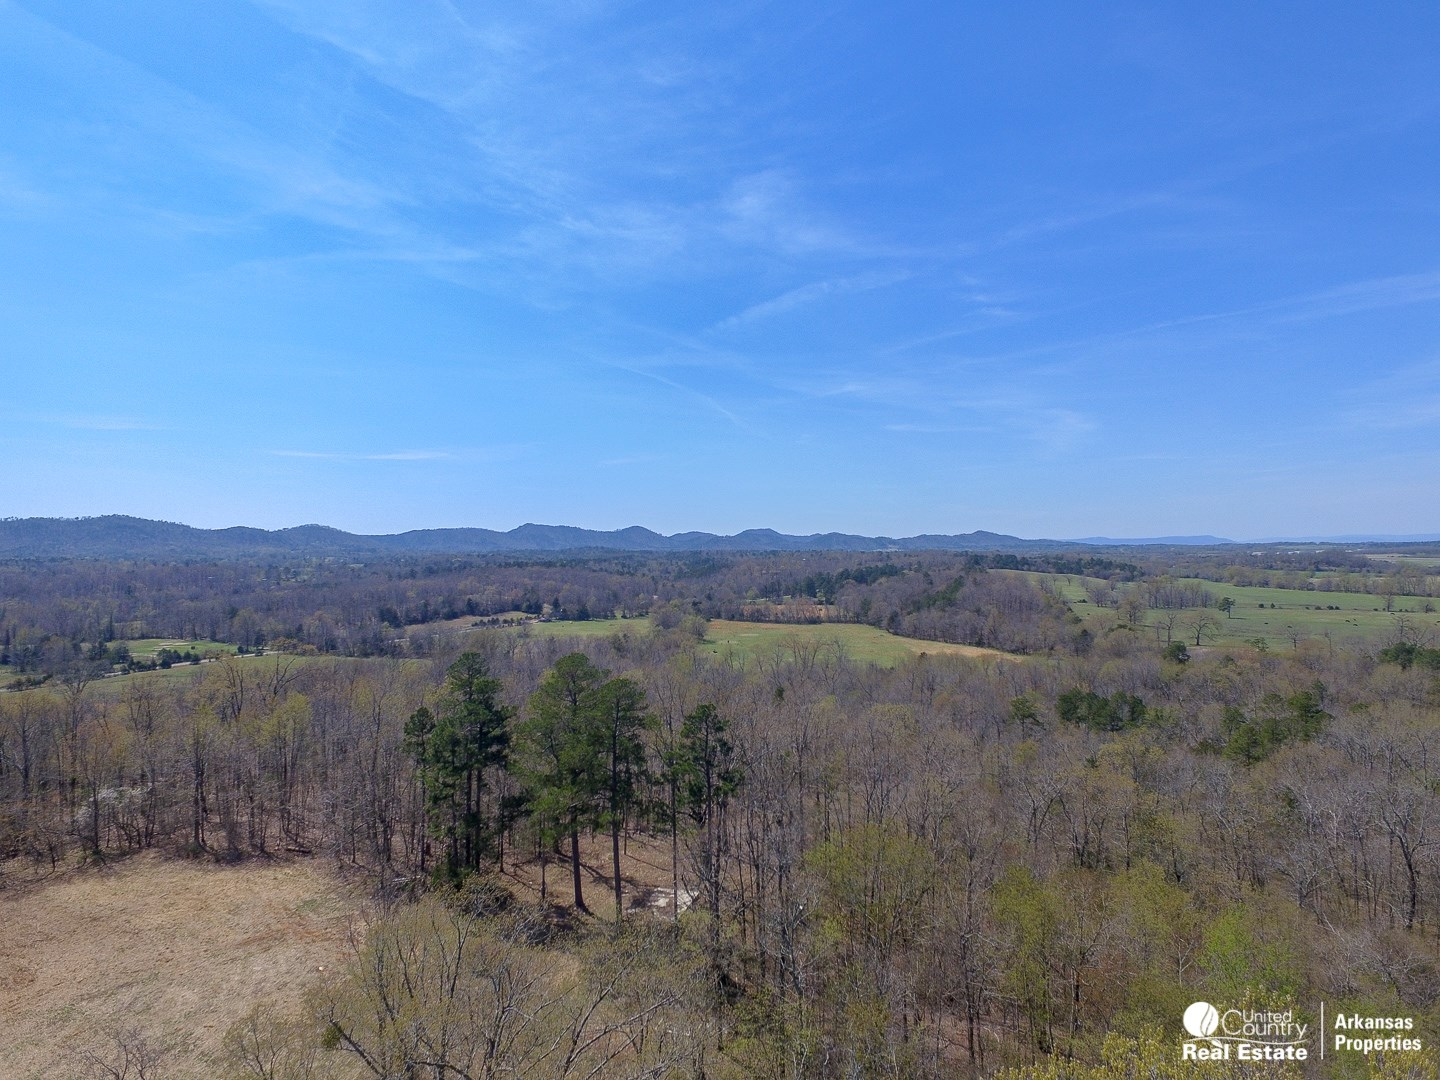 Acreage with a view close to town.